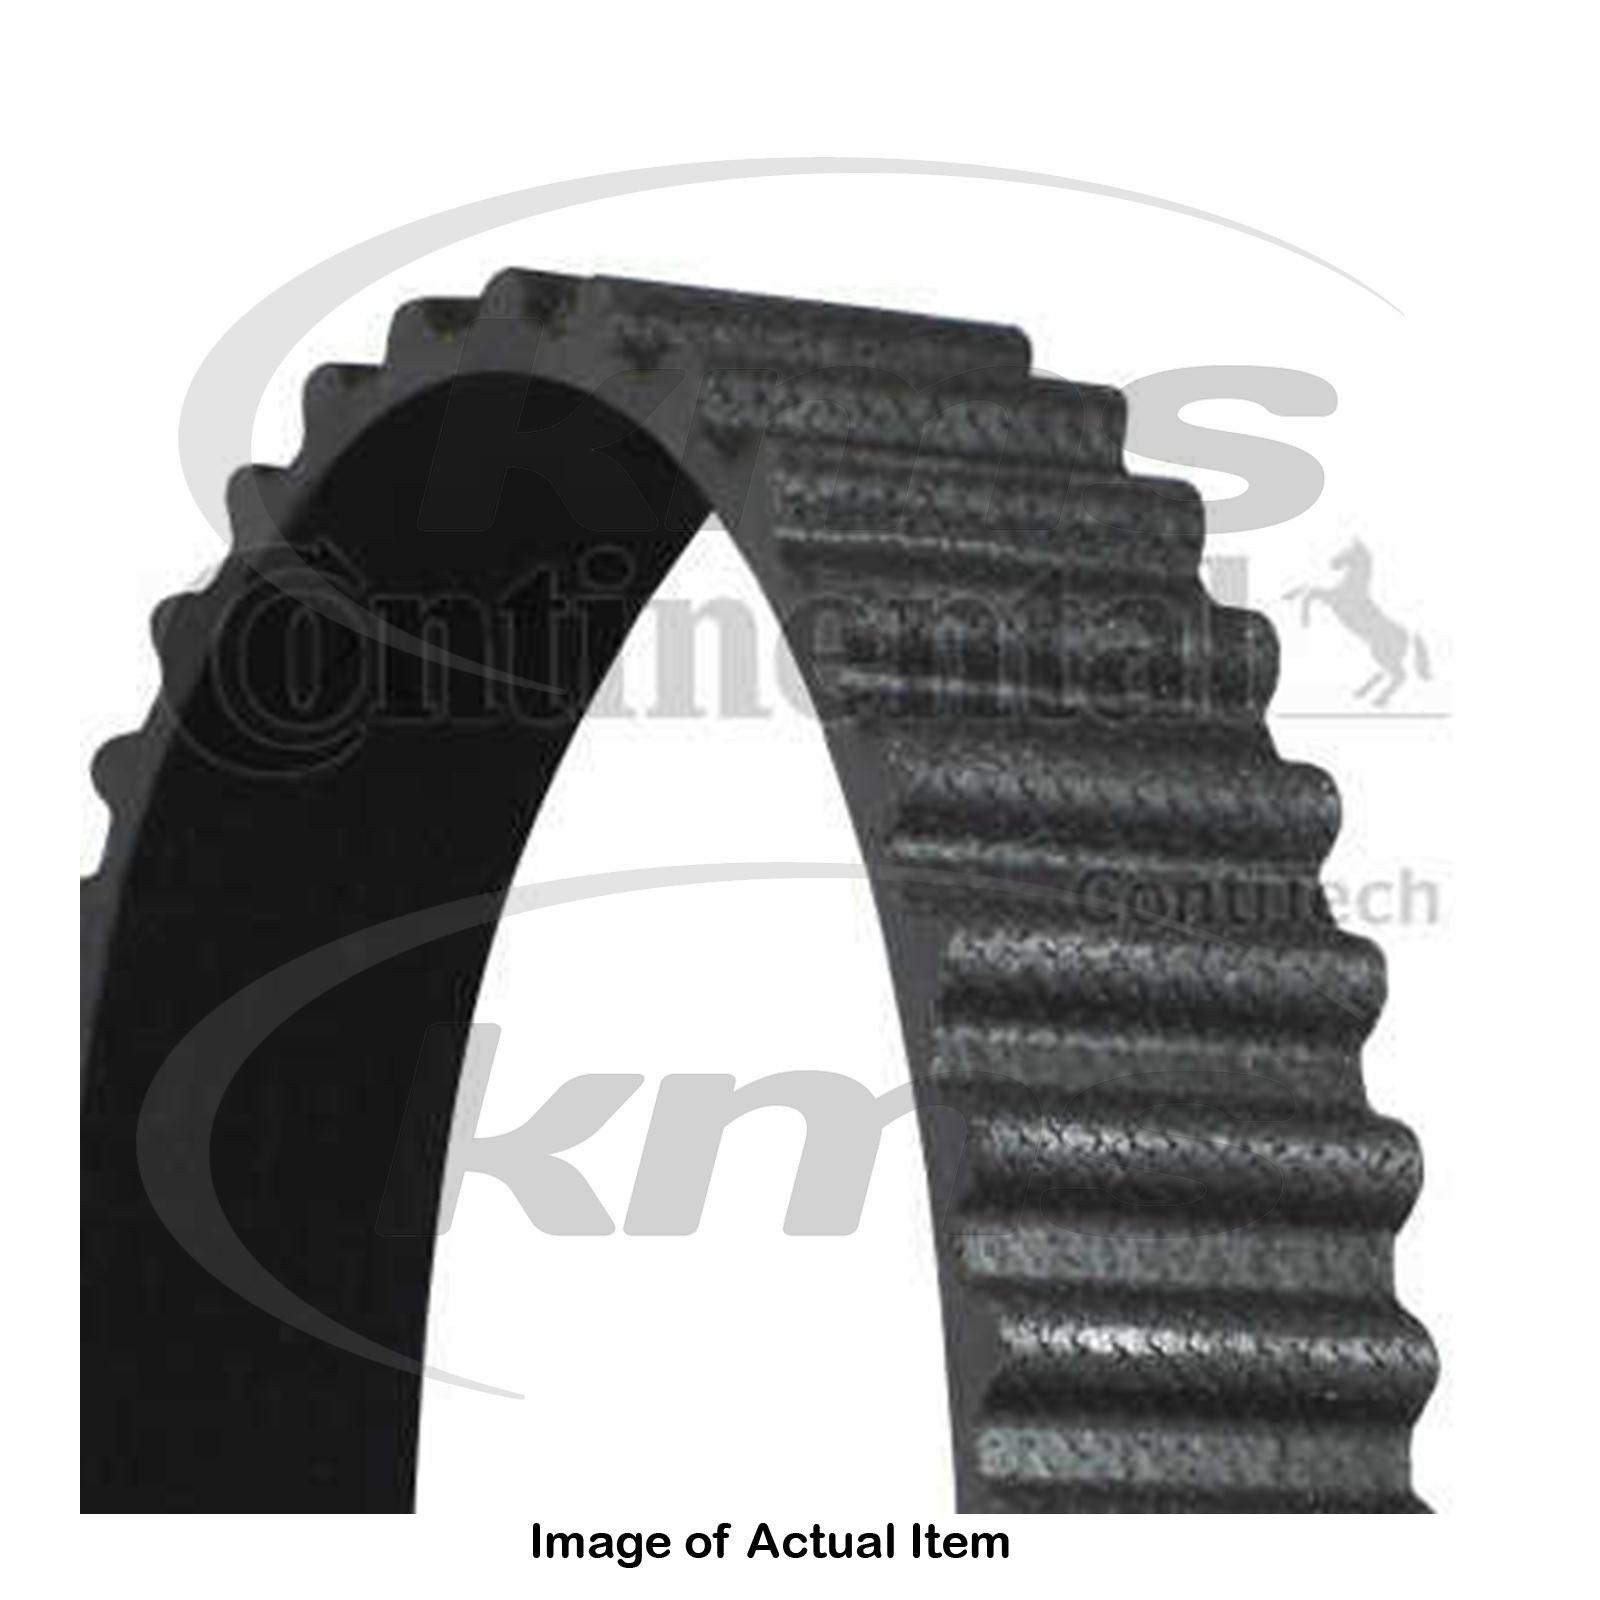 Engine & Engine Parts CT1178 Continental TIMING BELT OE QUALITY Car Parts